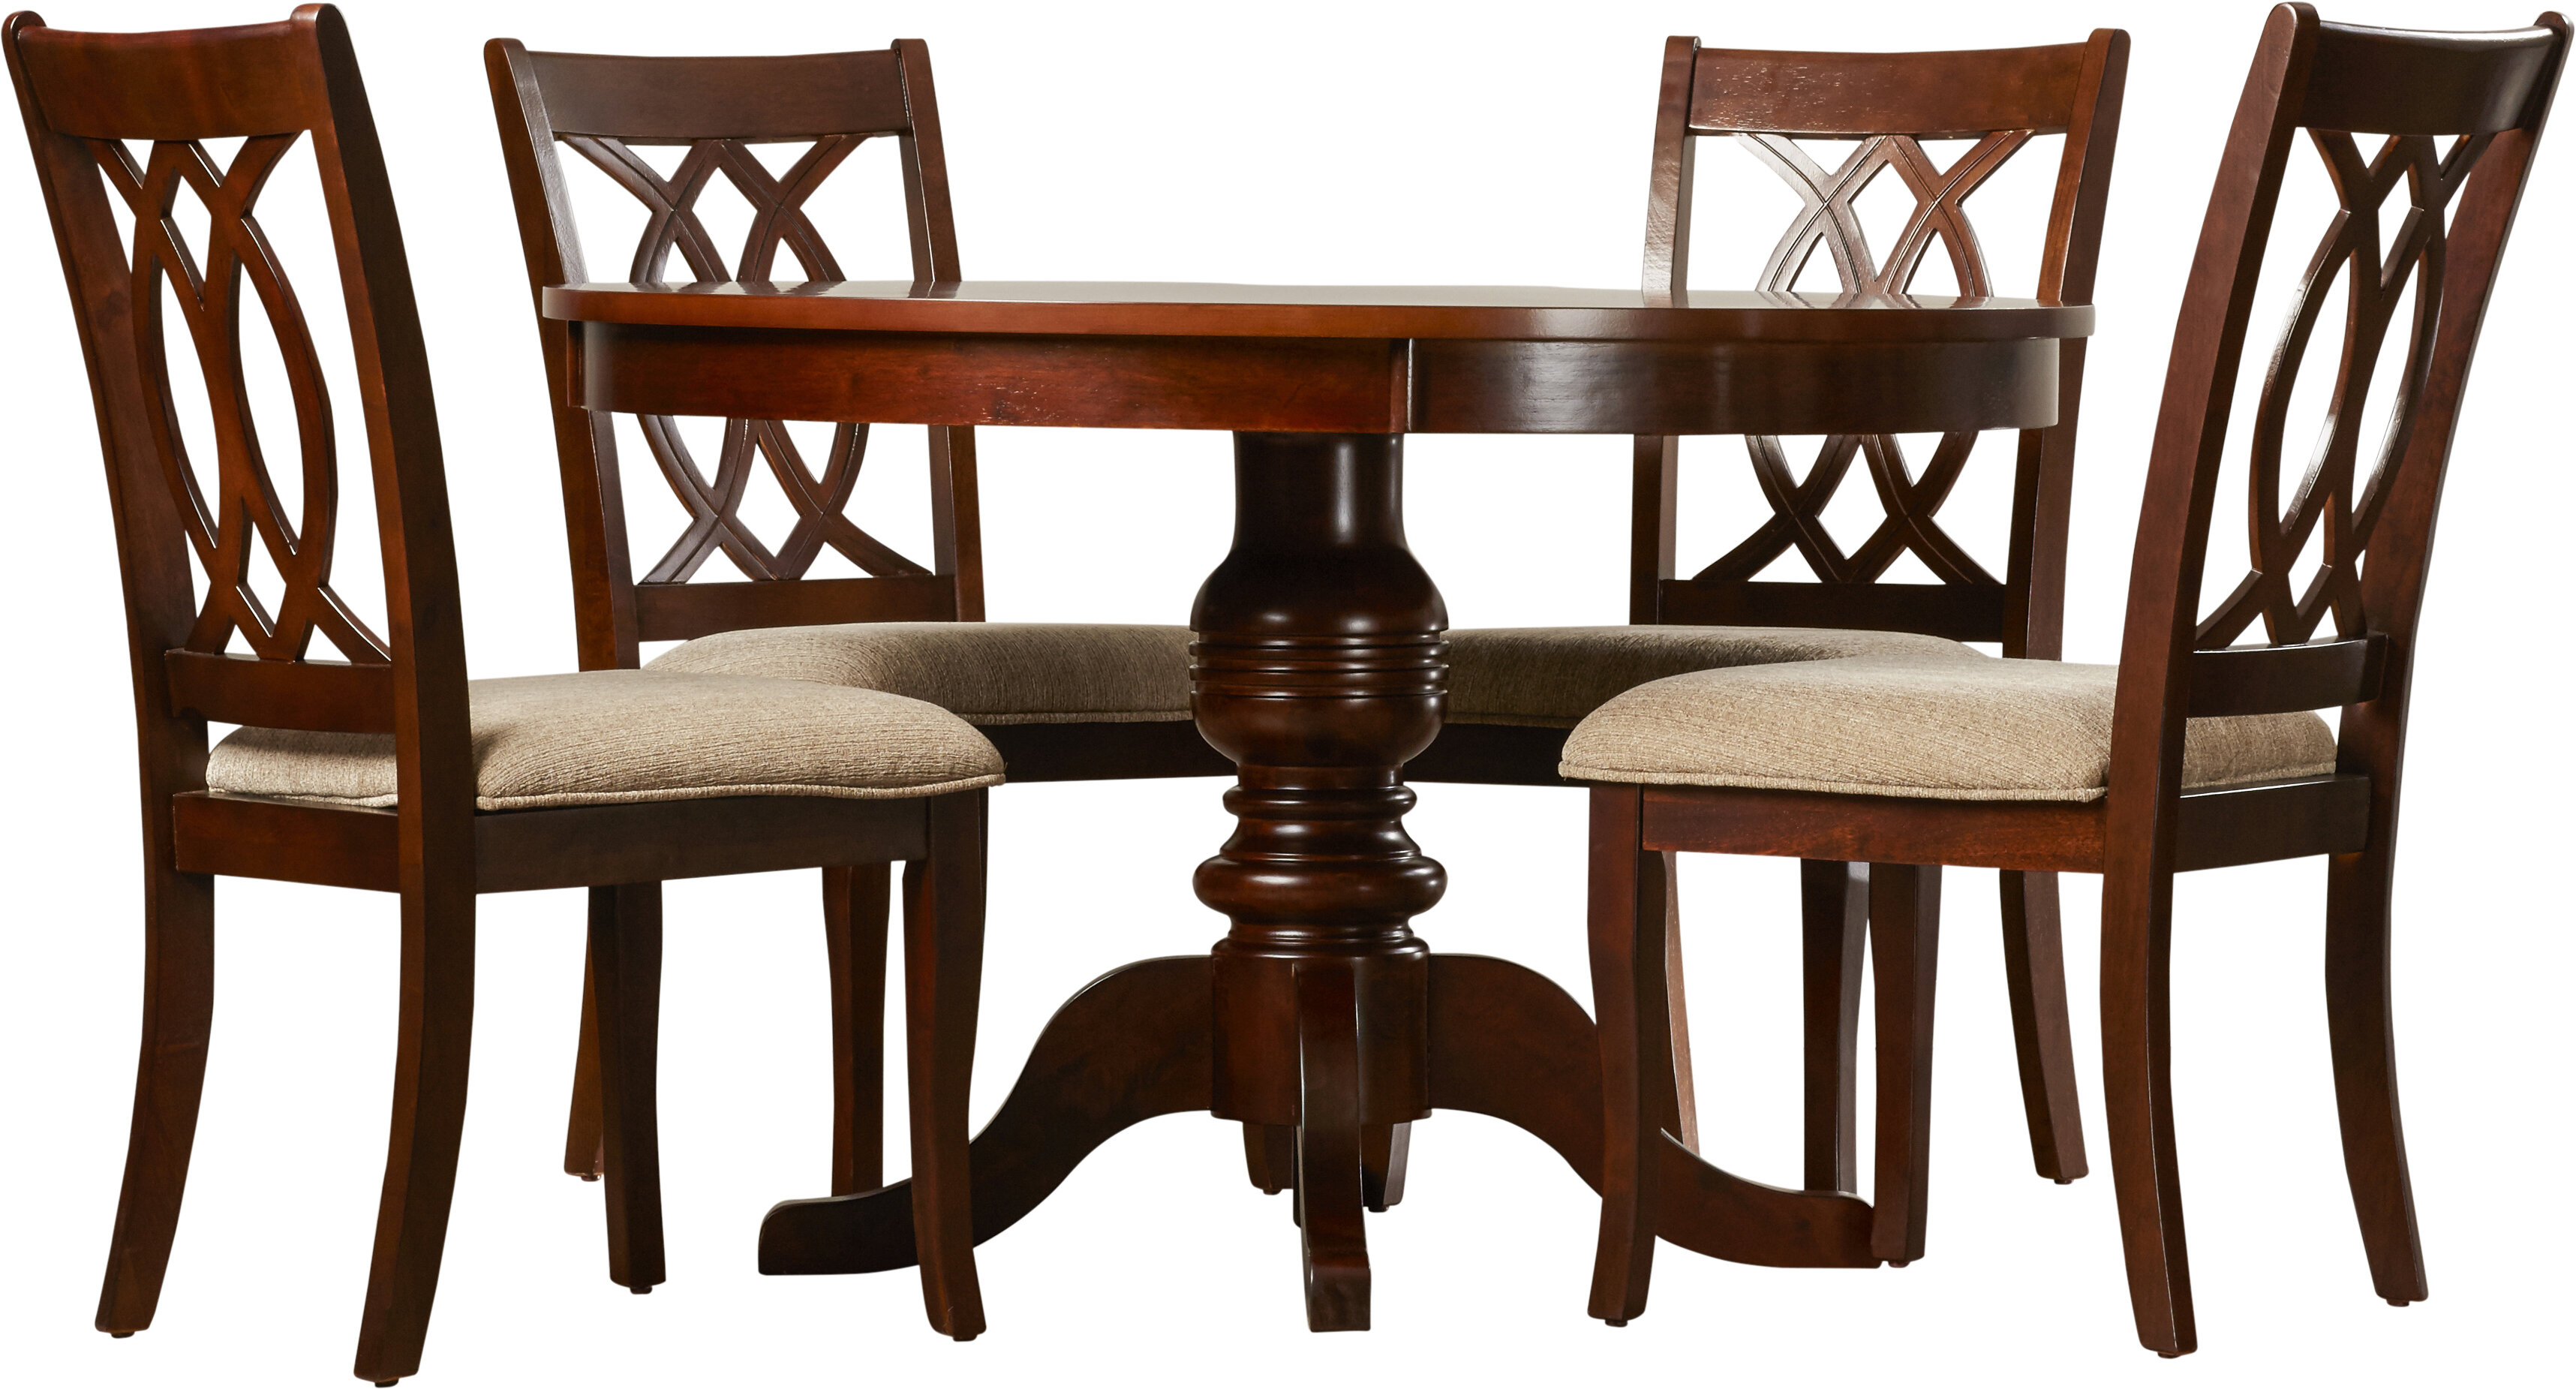 Bon Astoria Grand Freeport 5 Piece Dining Set U0026 Reviews | Wayfair